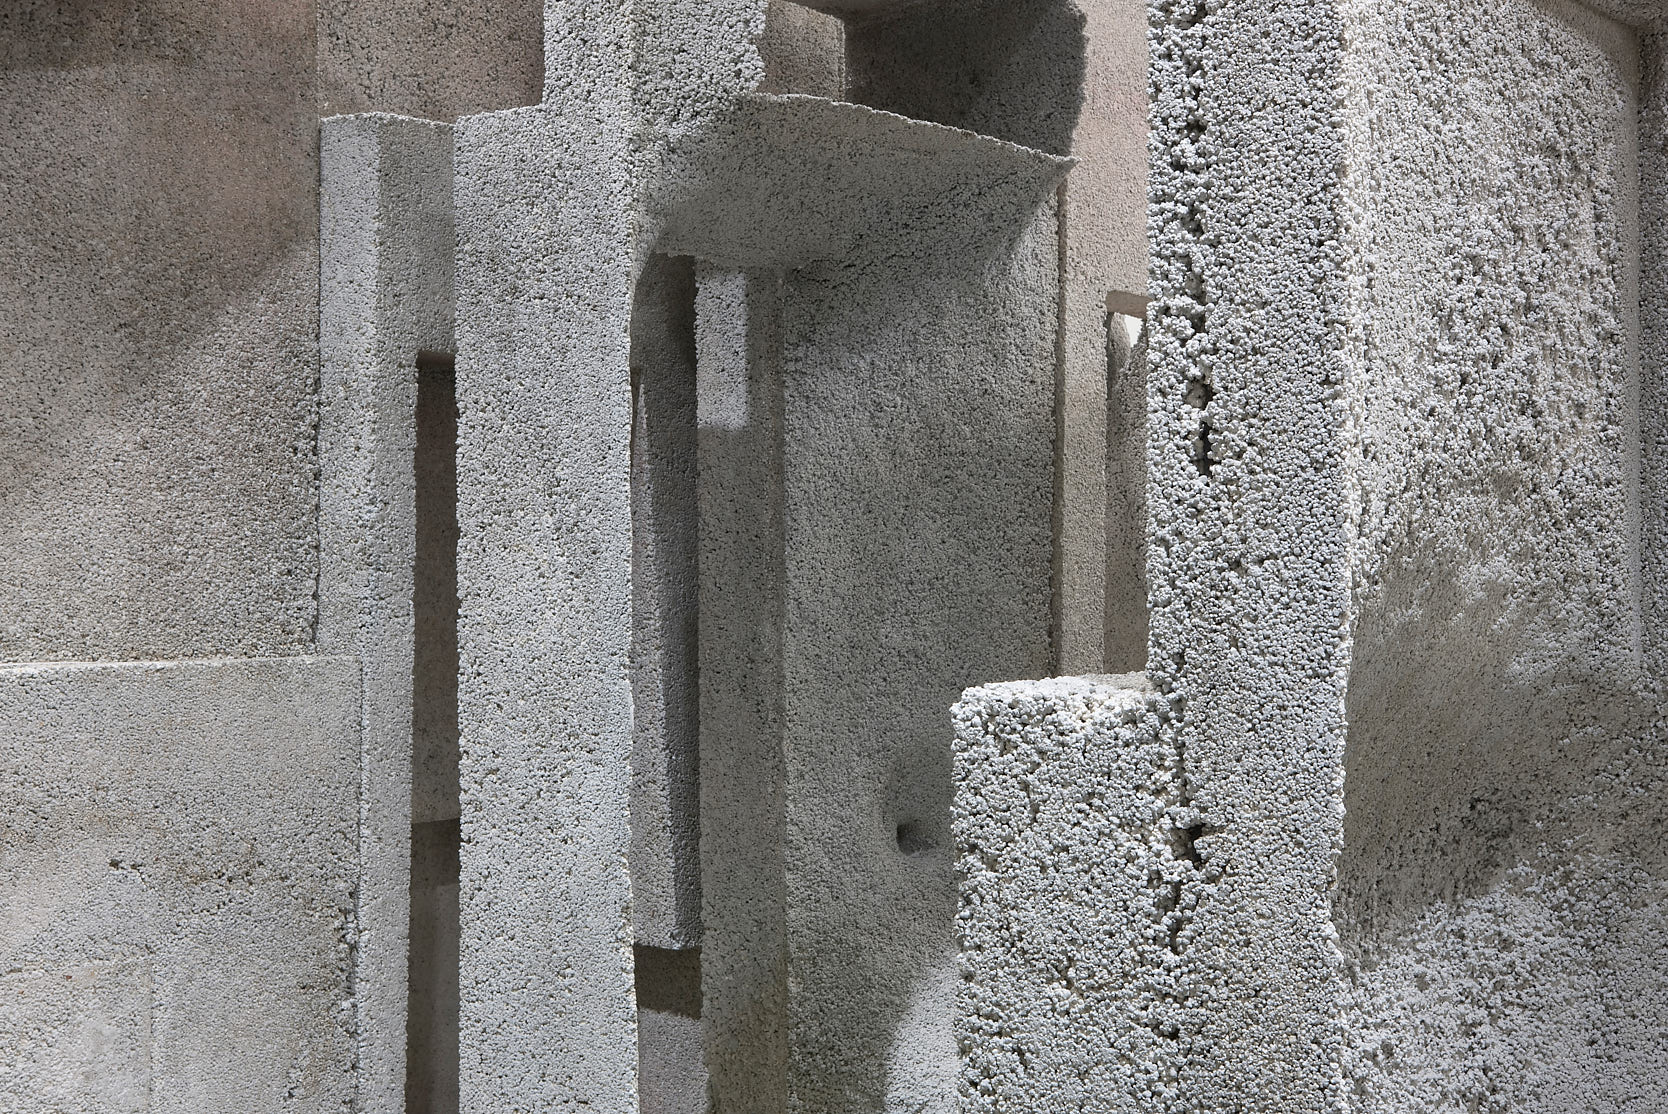 A Styrofoam Lover with (E)Motions of Concrete, Sci-Arc Gallery Los Angeles, 2009: Detail